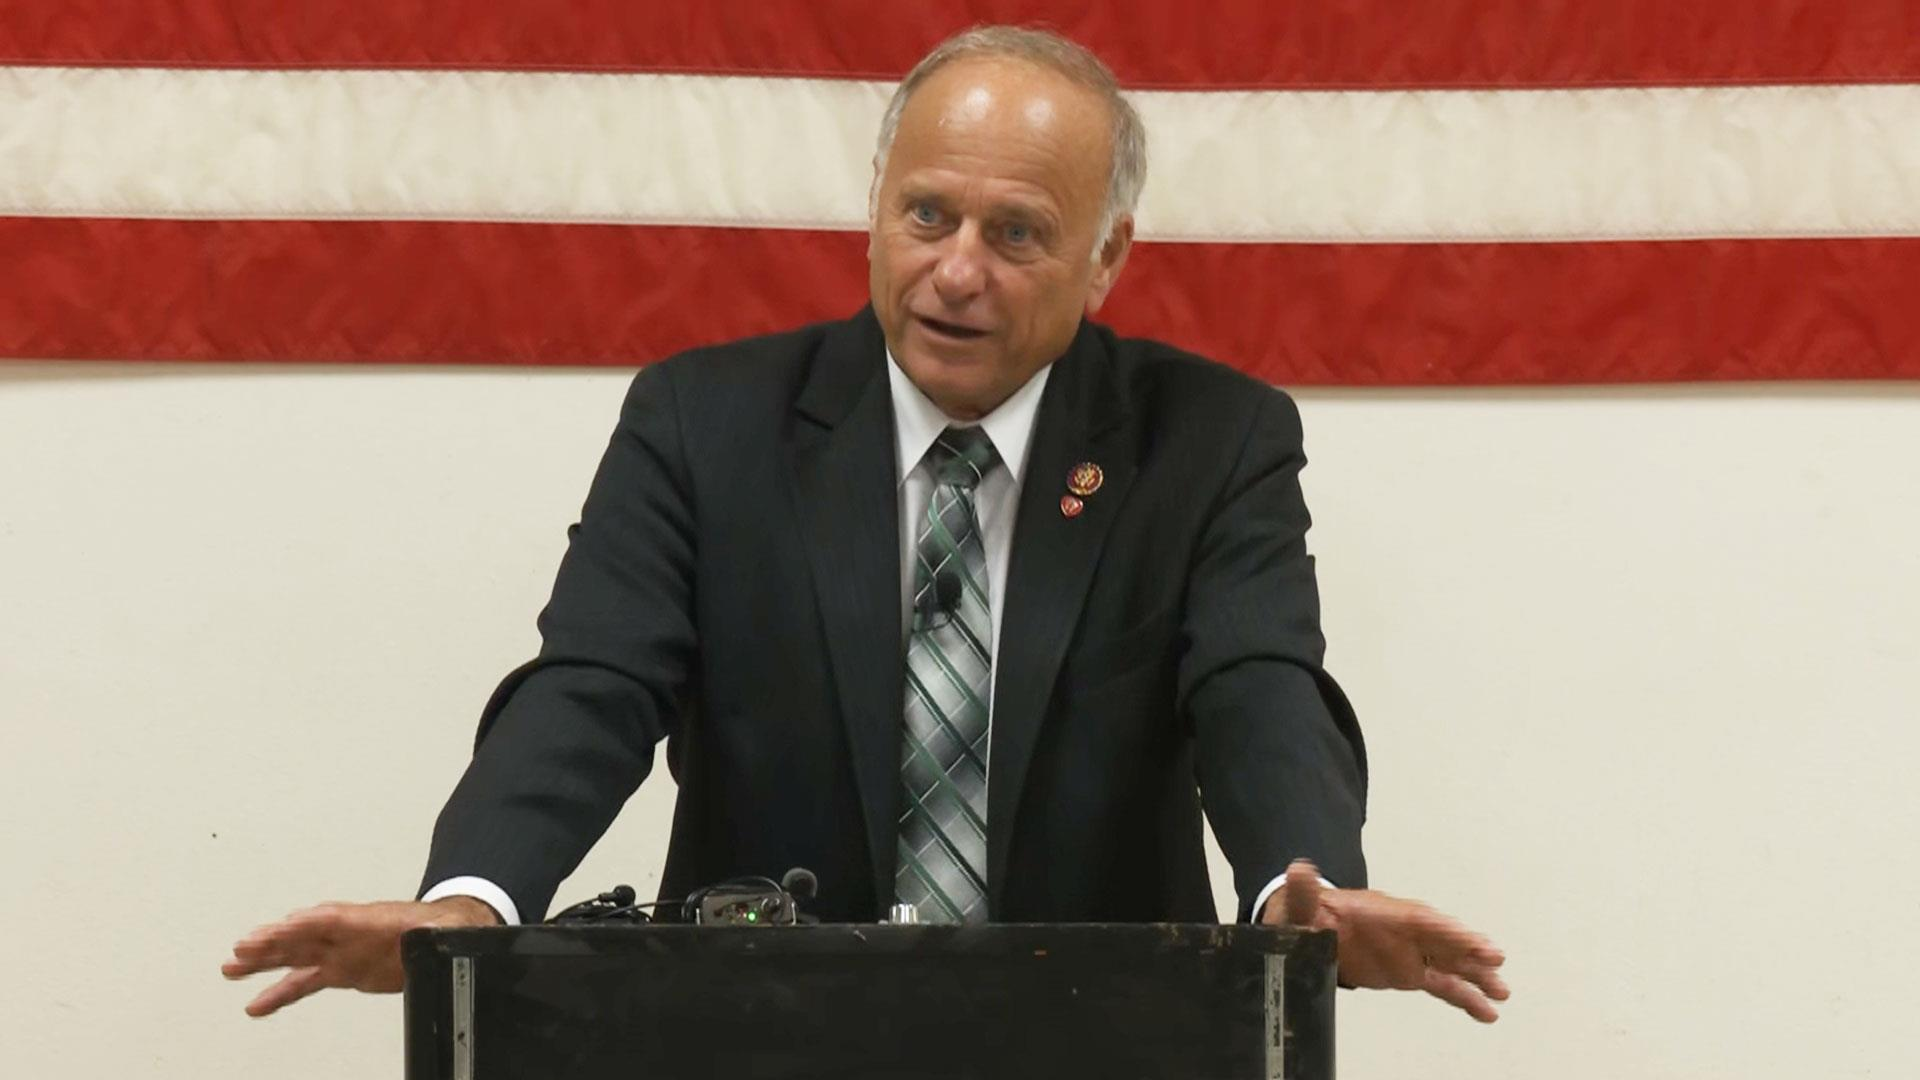 Steve King says he drank out of migrant facility toilet, calls it 'pretty good'